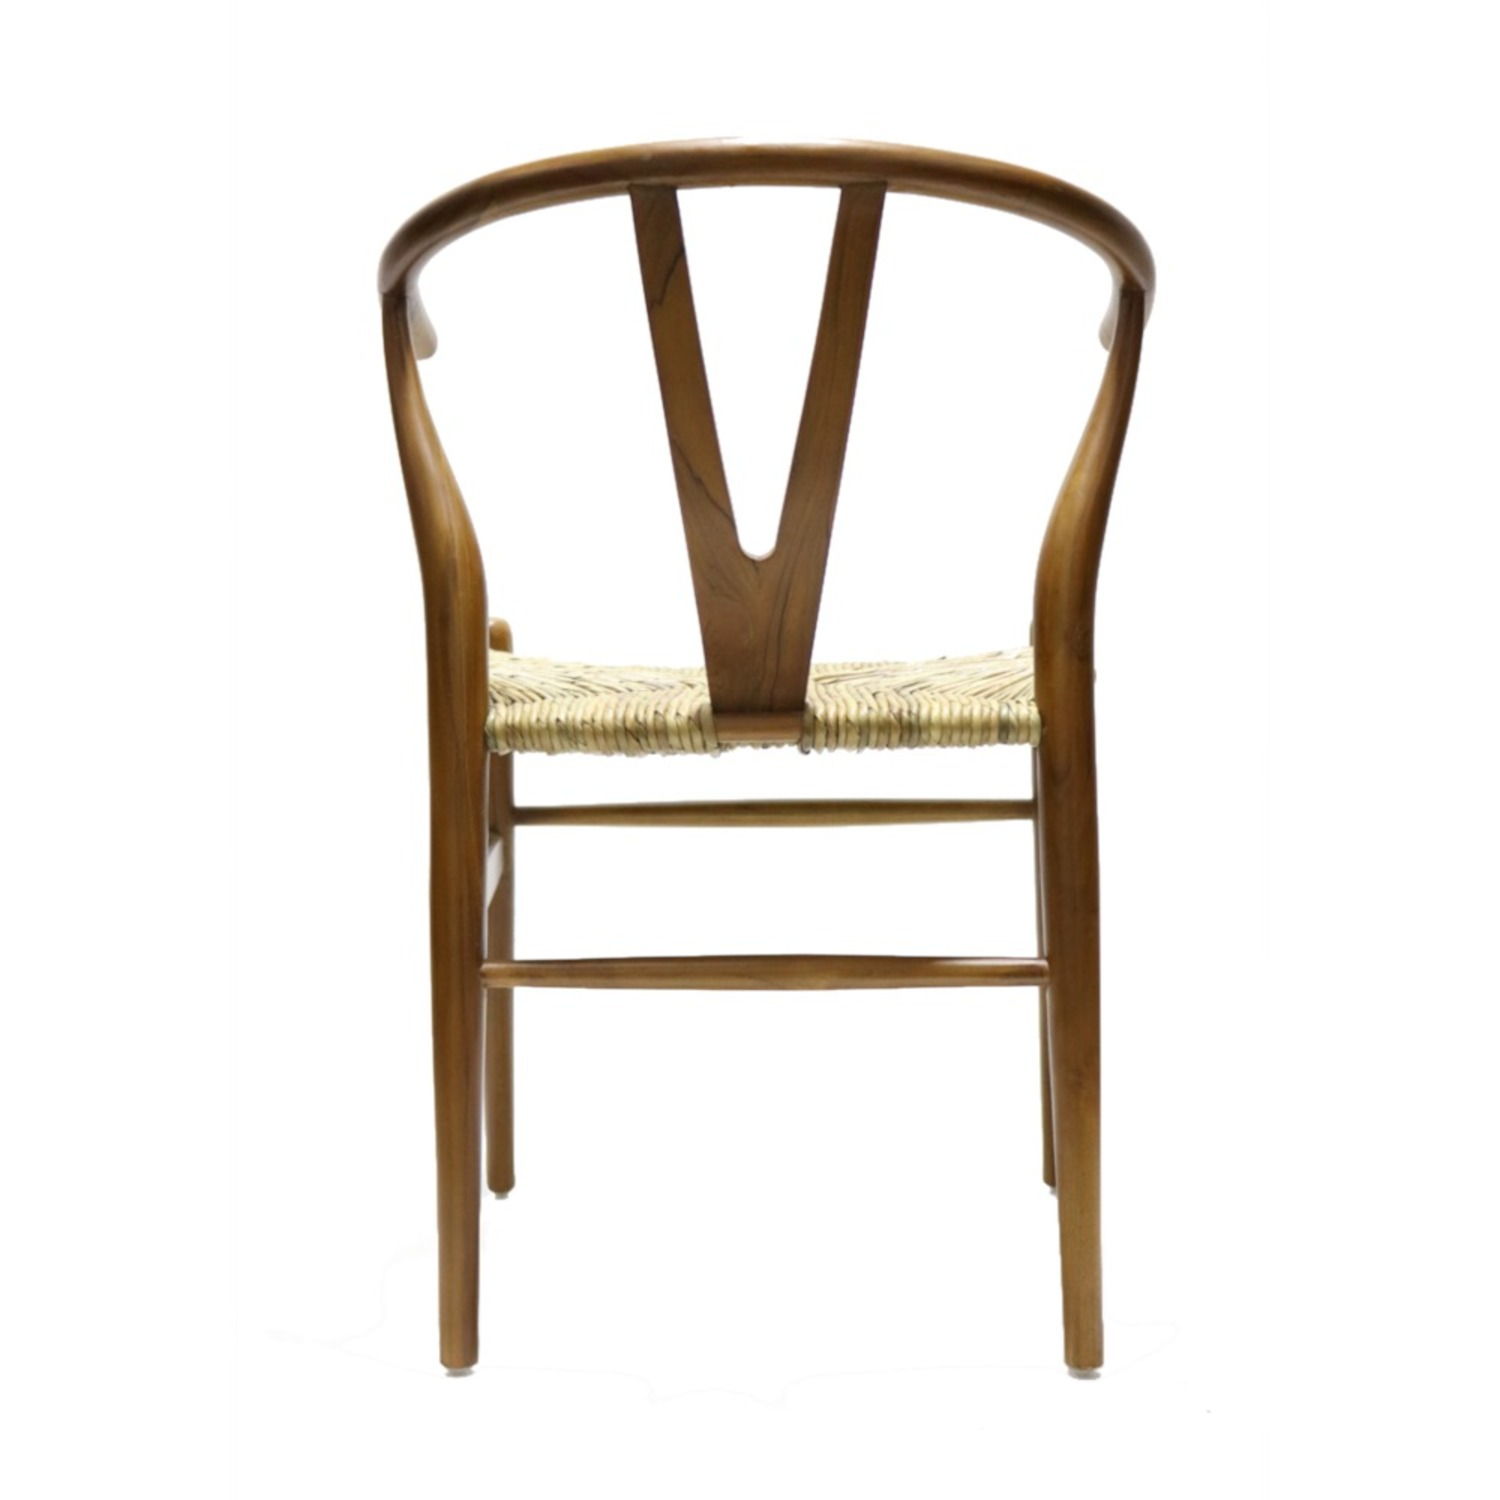 Dining Chair In Walnut Frame & Natural Hemp Seat - image-3